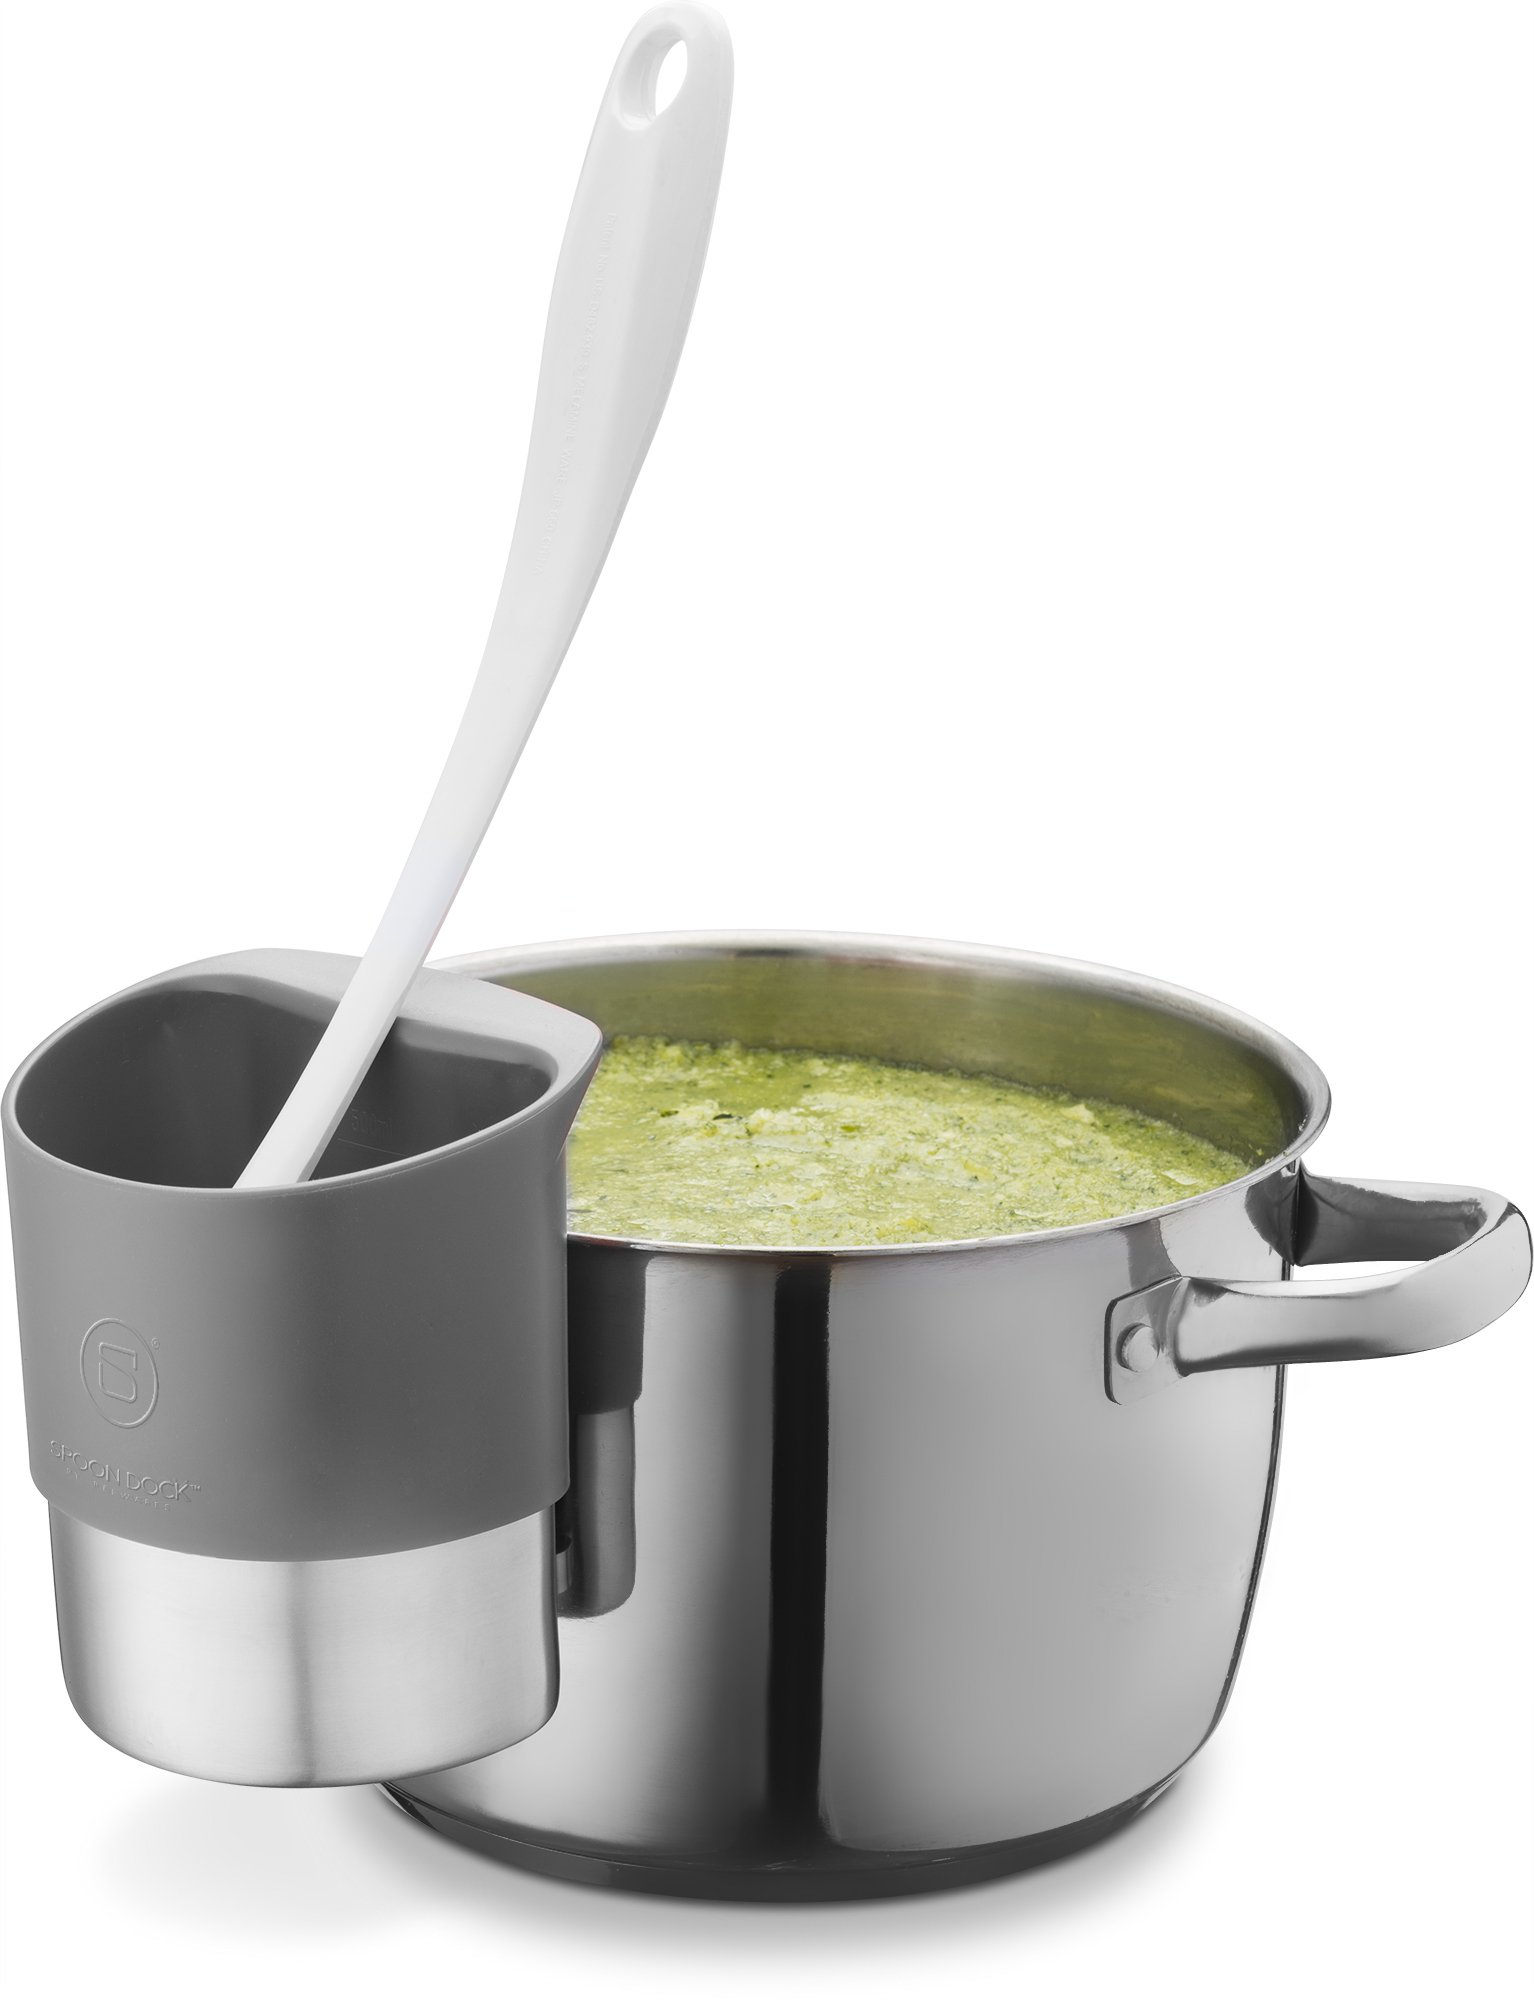 Spoon rest Stainless Steel Spoon Dock for Utensils - This Cup Hangs on Saucepans and Pots for Preparing and Serving Food Without Creating a Mess - Use as a Measuring Cup, Mix, Pouring … (Grey)